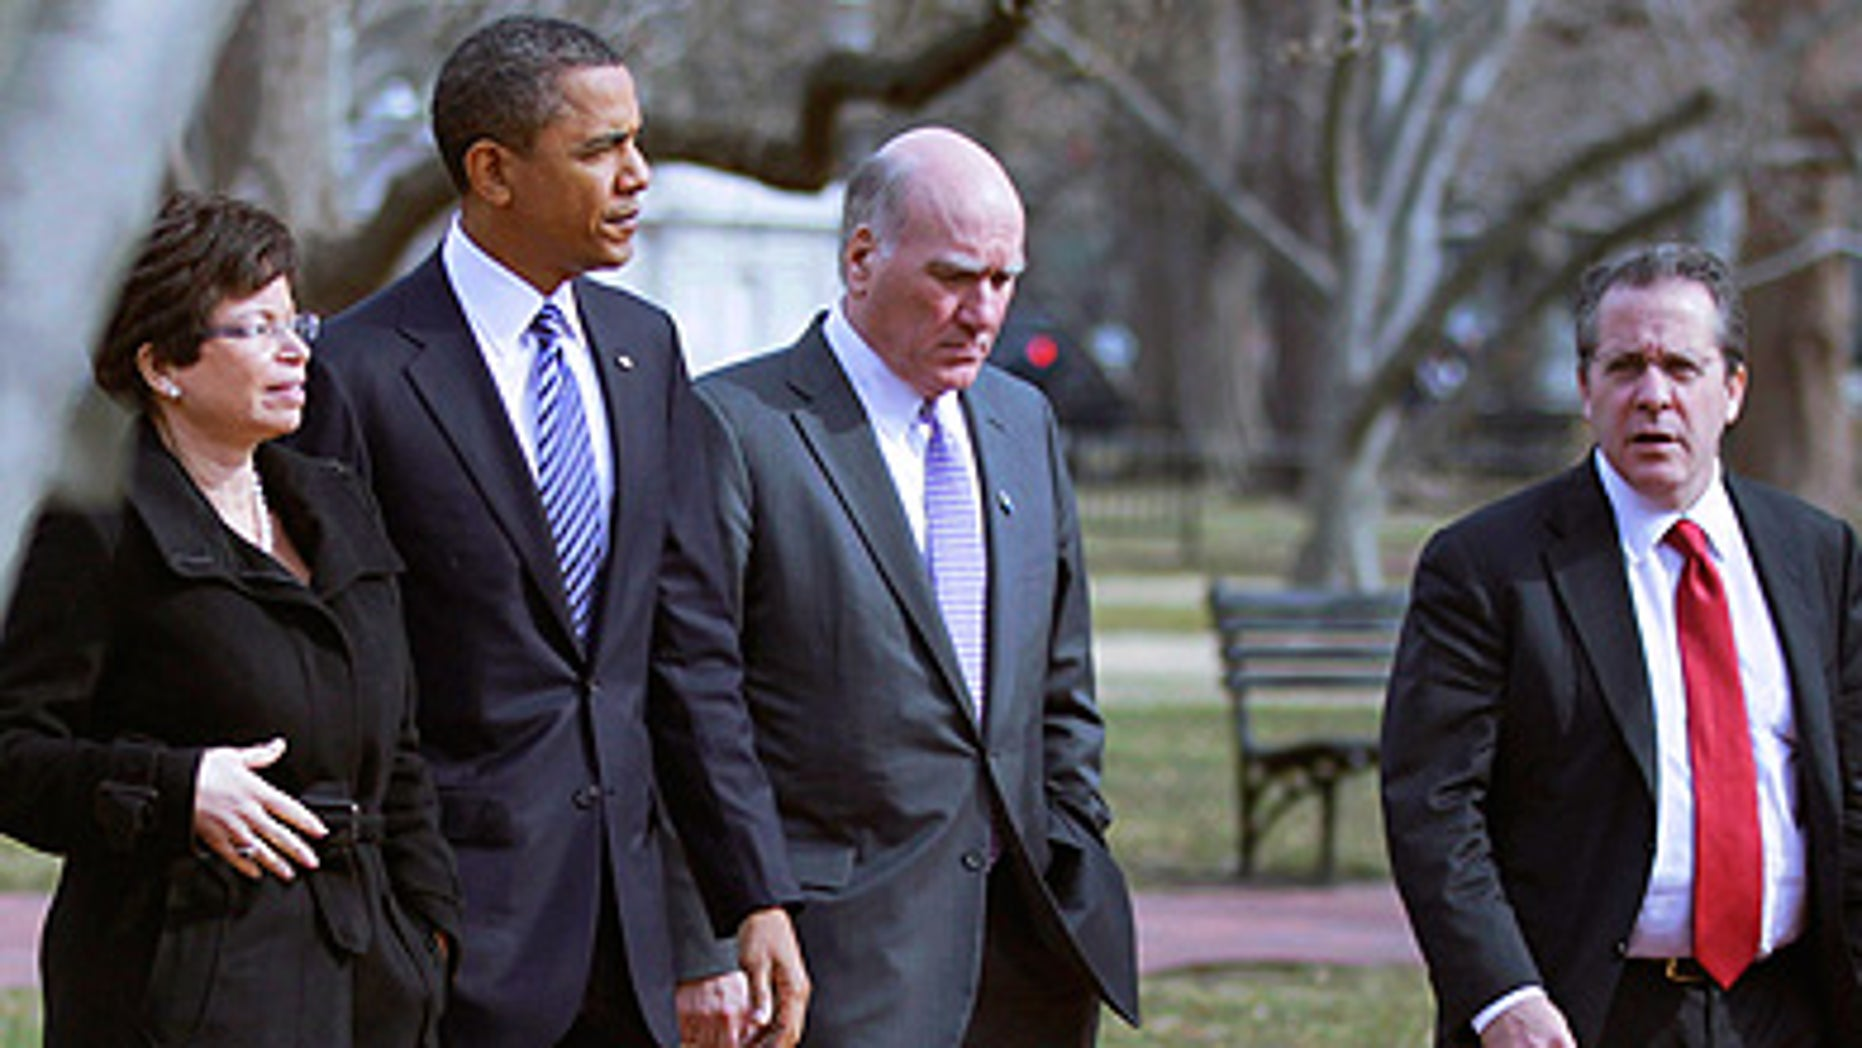 Monday: President Obama is surrounded by Senior adviser Valerie Jarrett, Chief of Staff Bill Daley and National Economic Council Director Gene Sperling while walking back to the White House from the U.S. Chamber of Commerce.